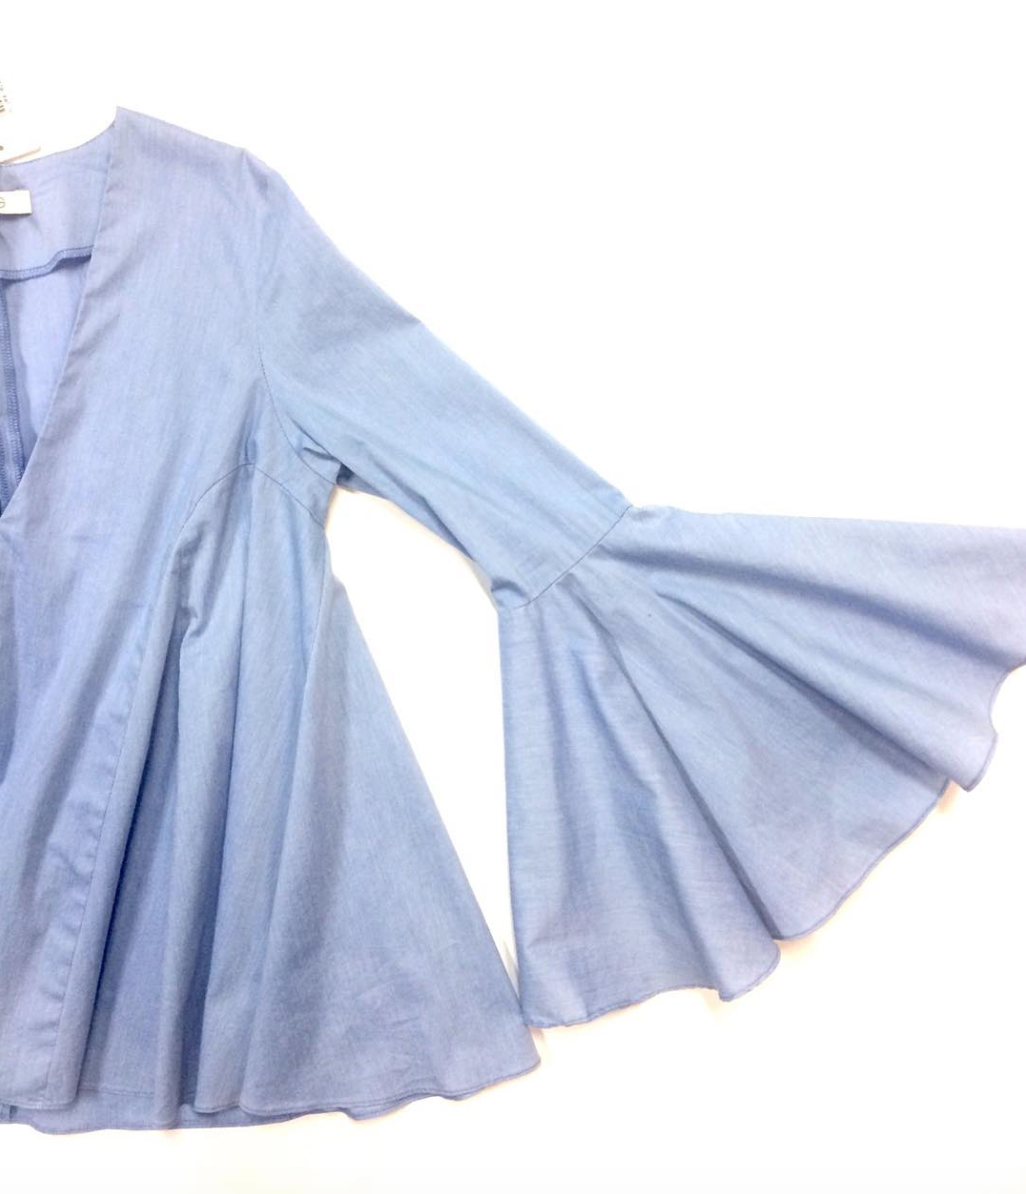 Bell sleeve top from Alexis